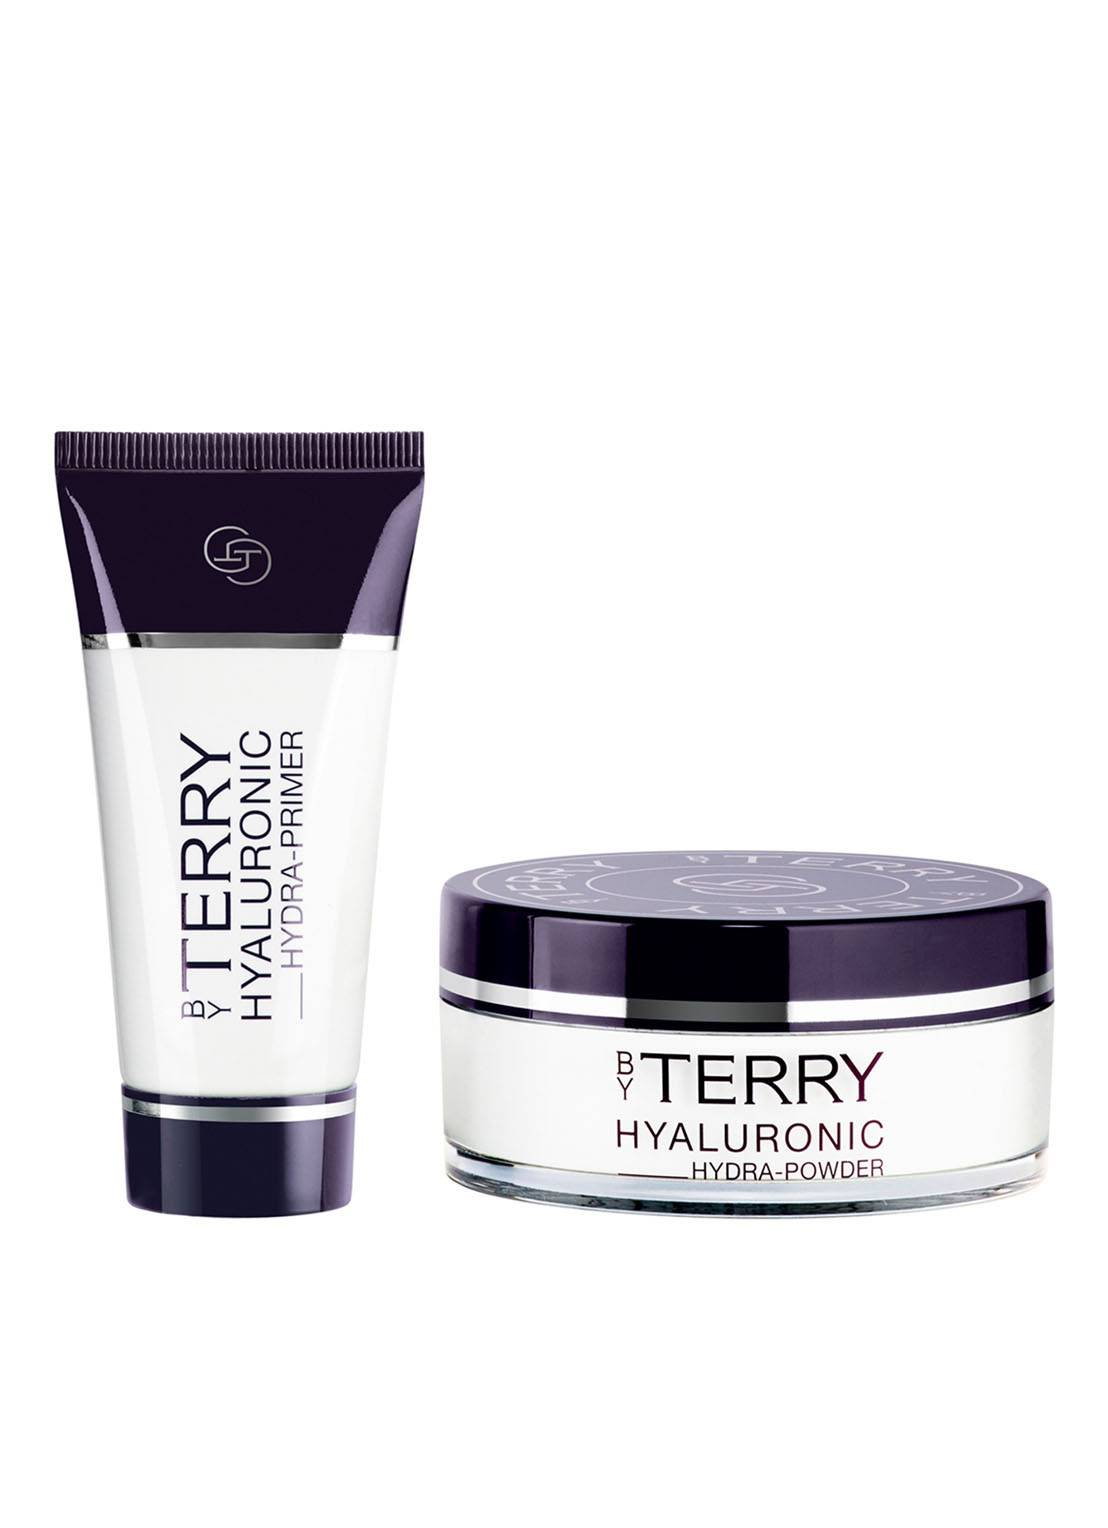 By Terry Hyaluronic Duo Set - apprêt et poudre -